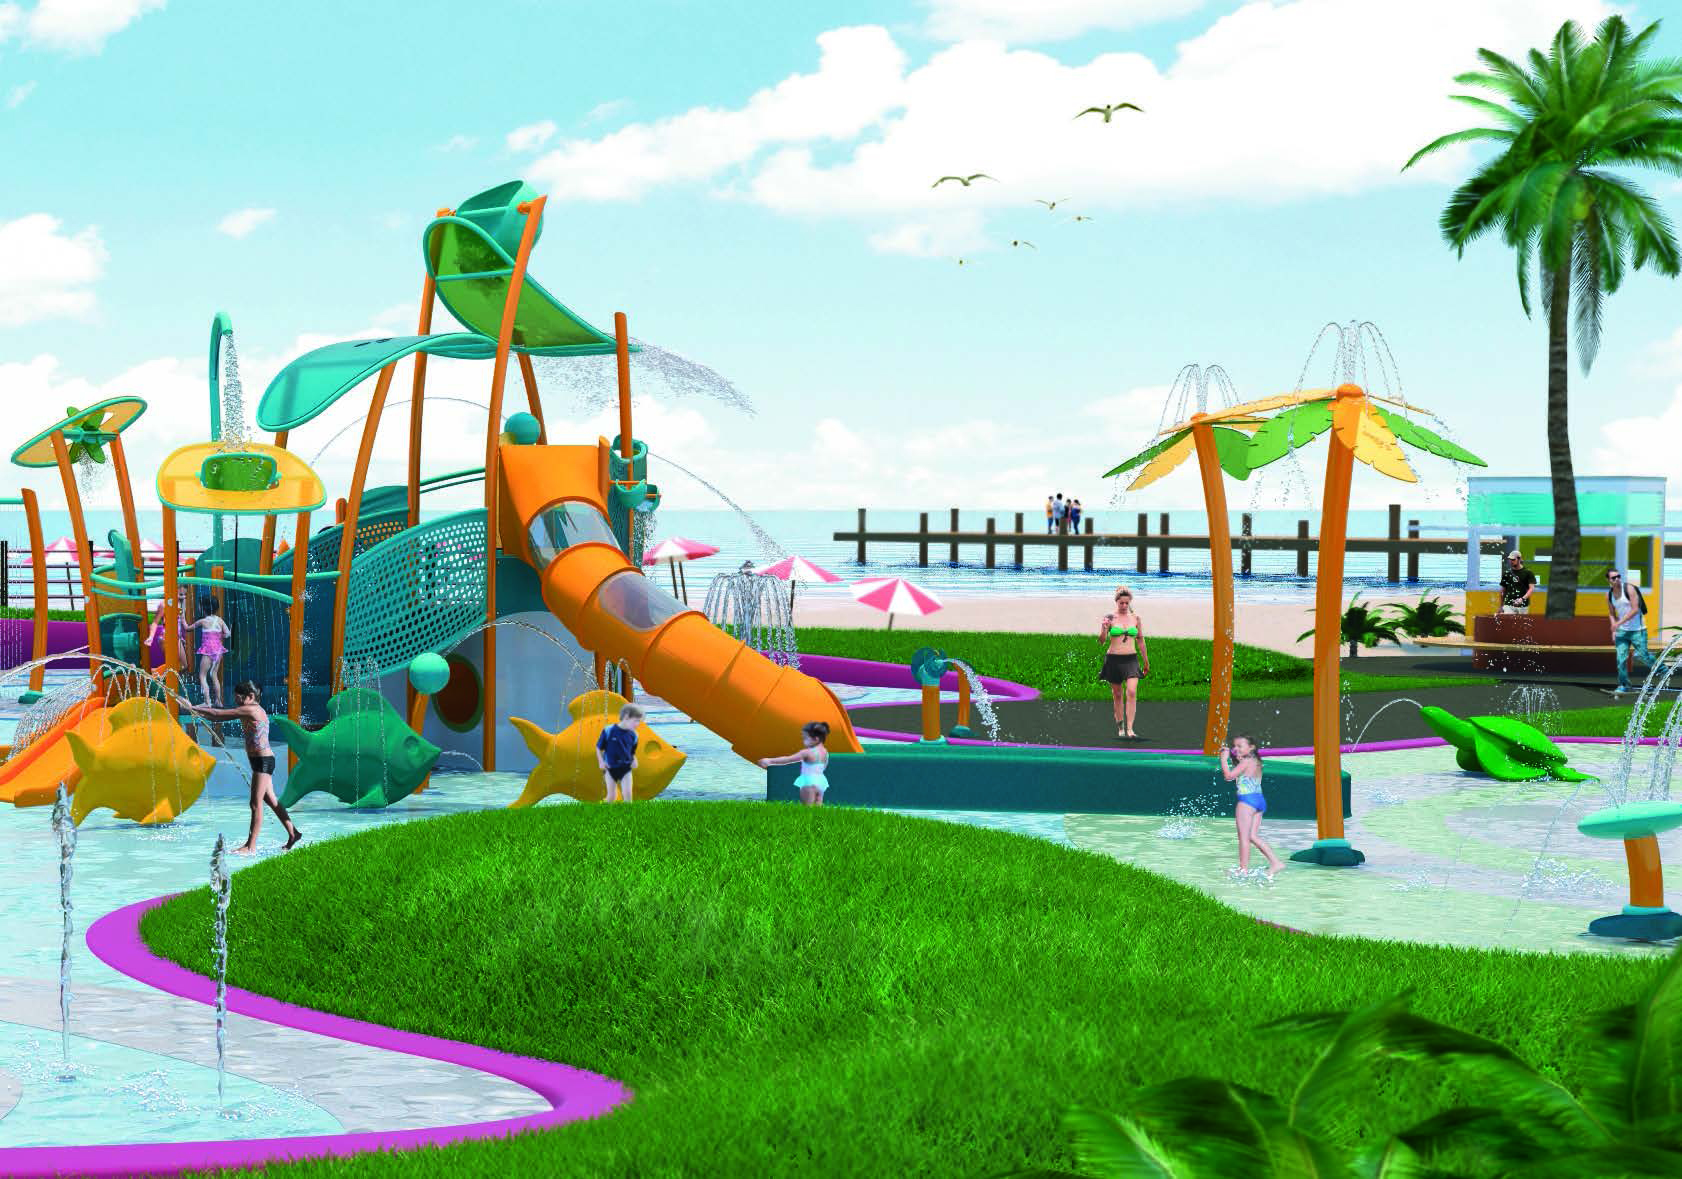 kids mini water splash park playground Featured Image